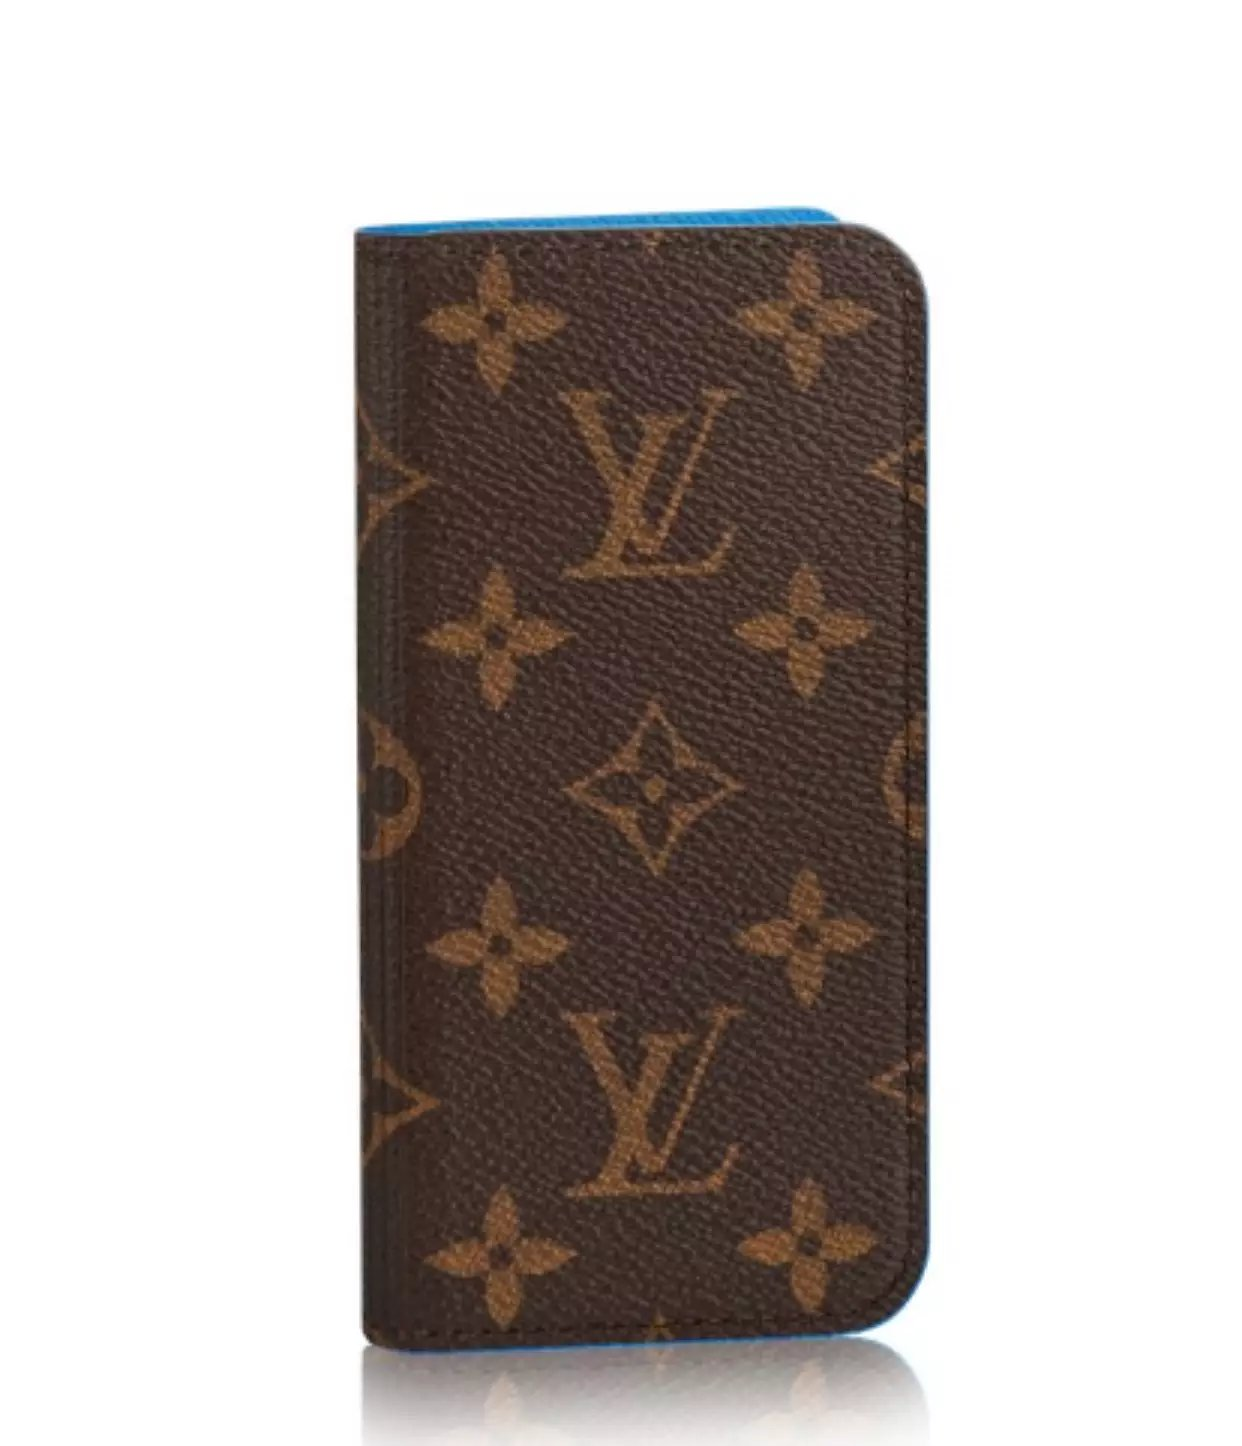 die besten iphone hüllen iphone filzhülle Louis Vuitton iphone 8 Plus hüllen hülle iphone 8 Plus 8 Pluslber gestalten handy ca8 Plus mit eigenem foto 8 Plus hülle iphone 8 Plus hülle glitzer iphone 8 Plus virenschutz foto handyschale